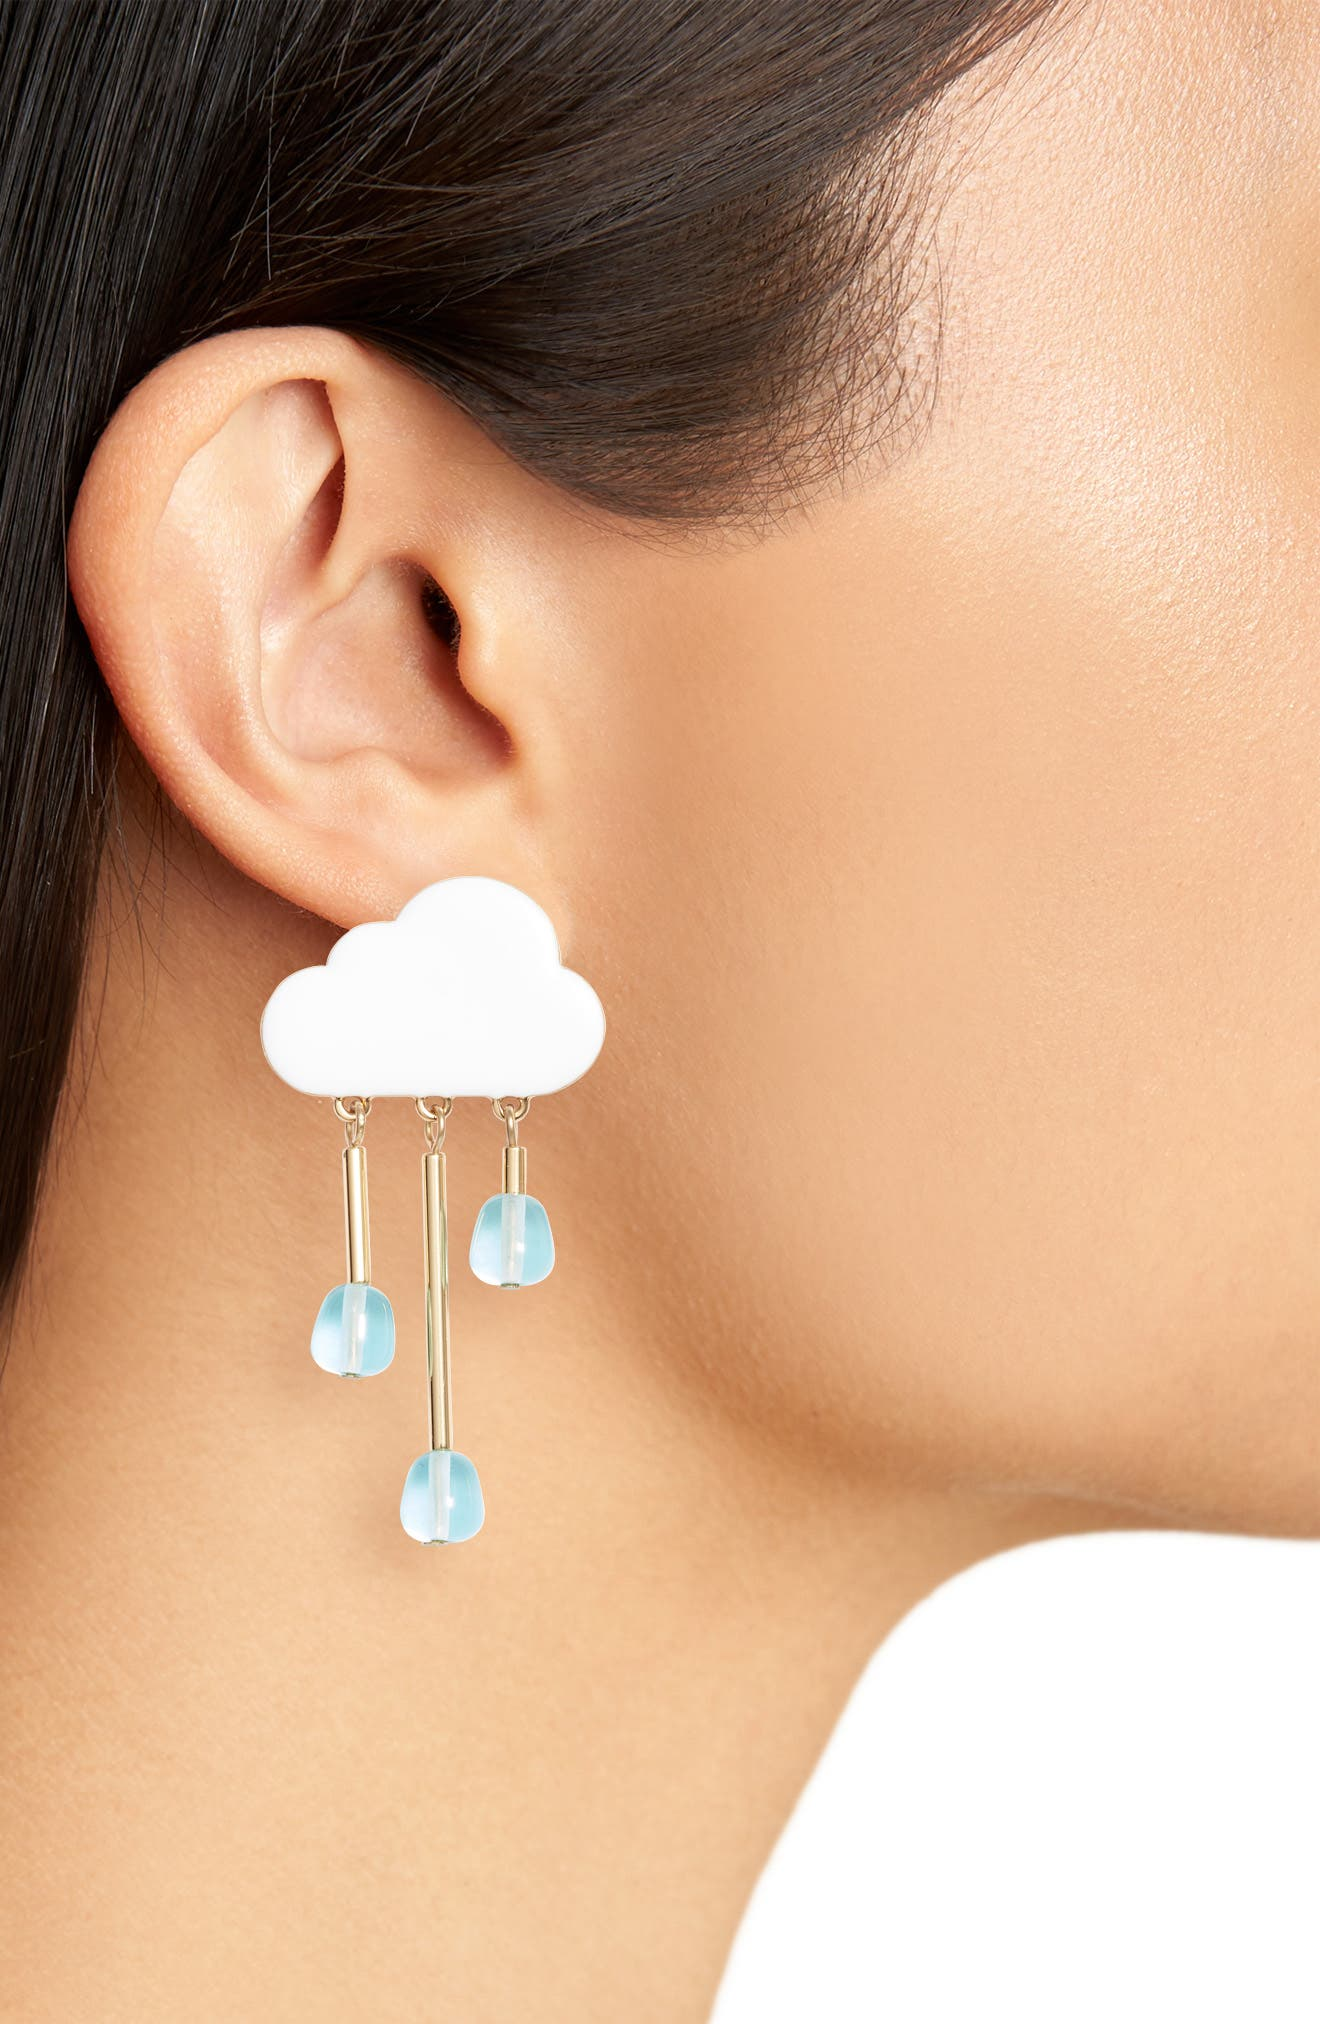 Chance of Rain Drop Earrings,                             Alternate thumbnail 2, color,                             White/ Gold